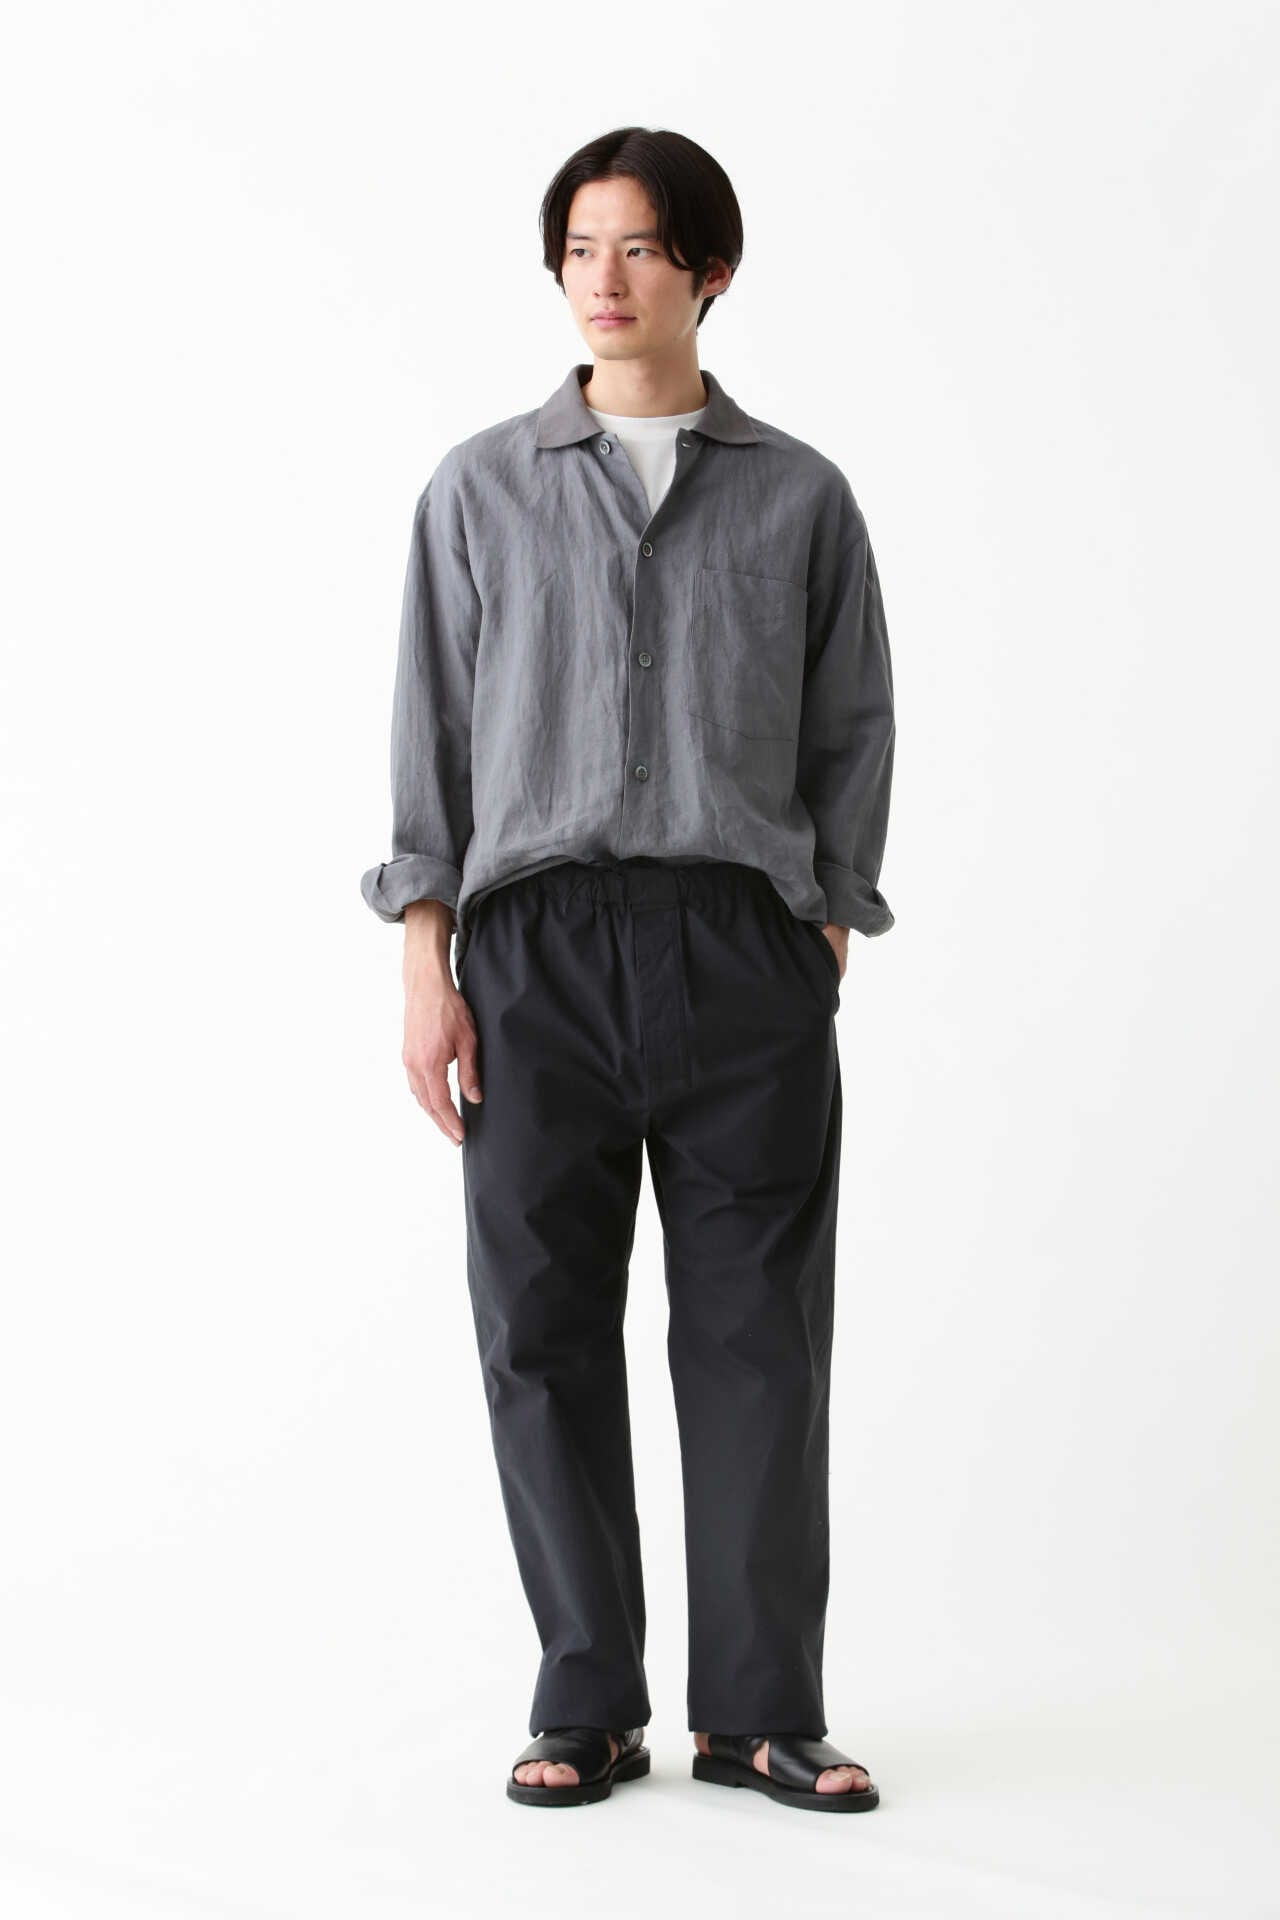 HIGHDENSE SHIRTING LINEN9